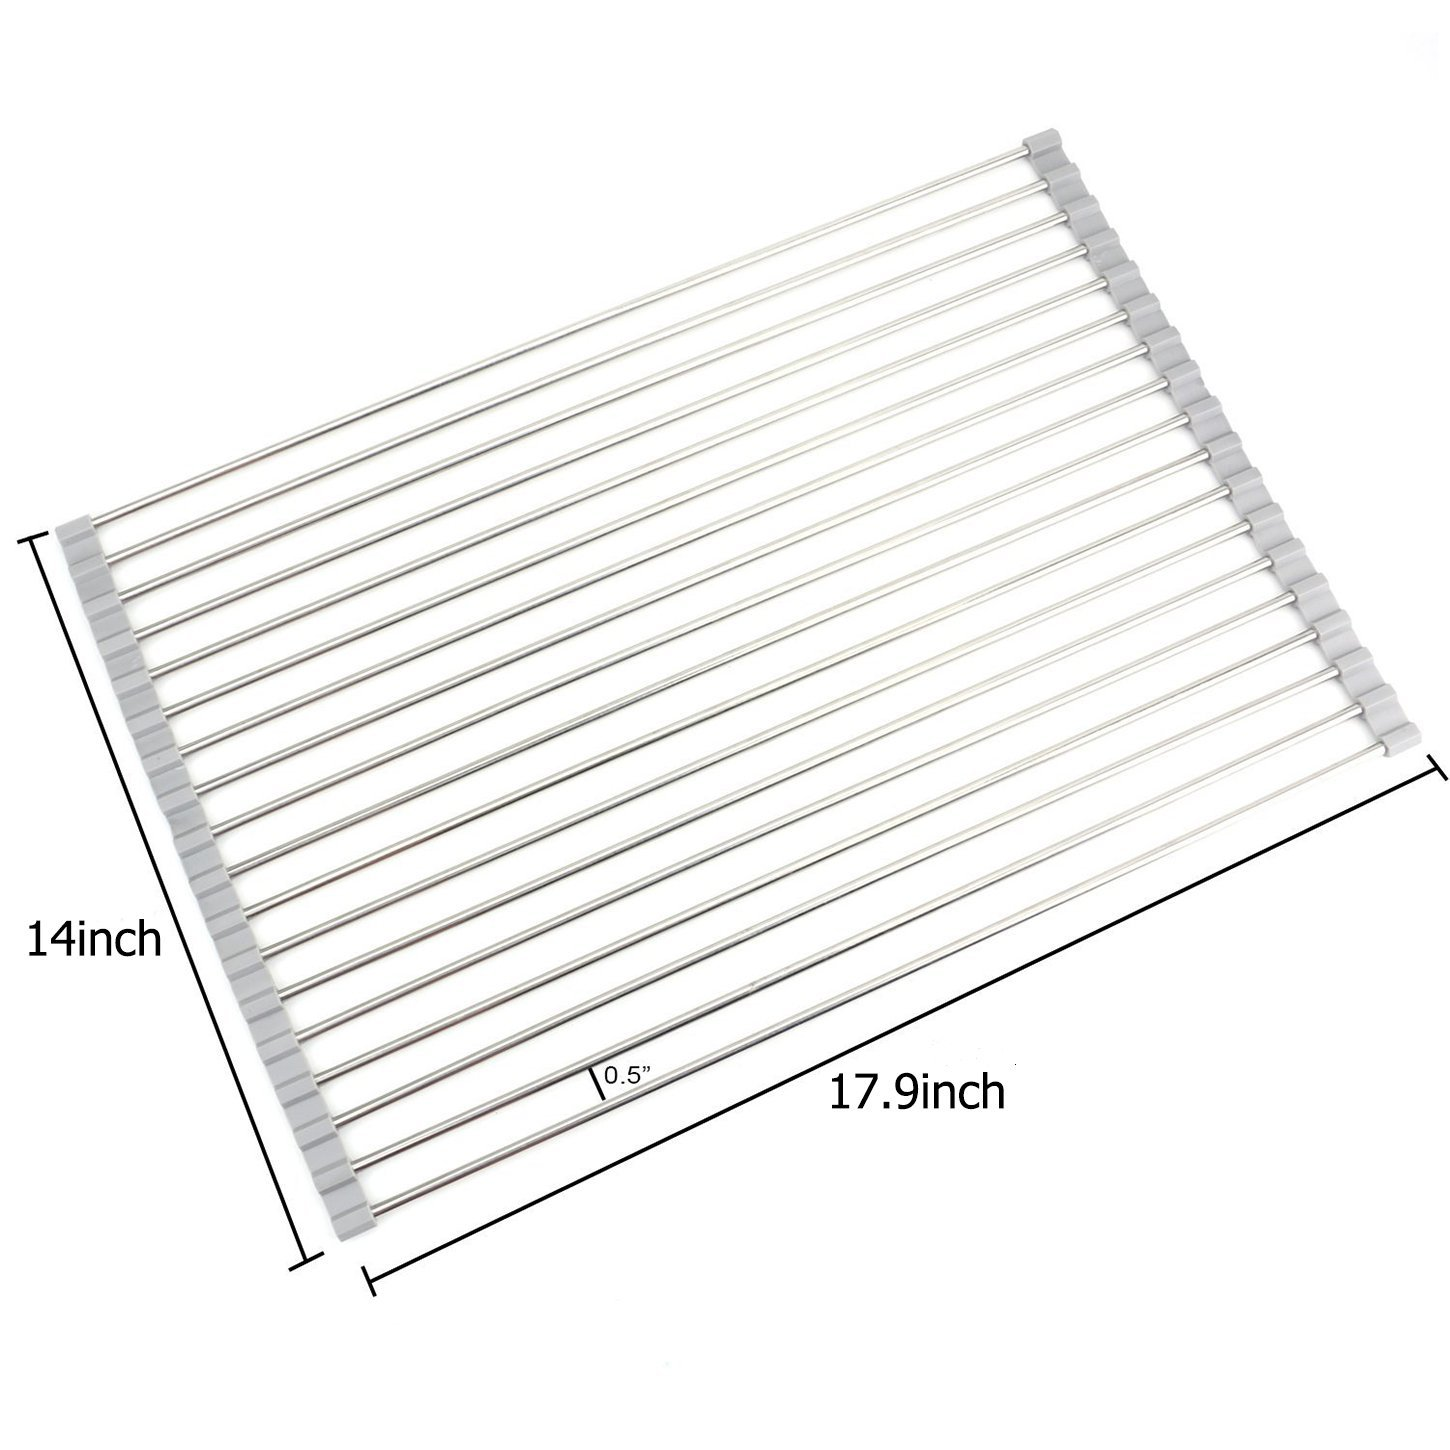 Roll up Dish Drying Rack-17.9'' (L) x 14'' (W) -over the Sink Dish Drying Rack Wide 304 Stainless Steel Dish Rack Foldable Dish Drainers for Kitchen Sink Counter by AHYUAN (Warm Grey)